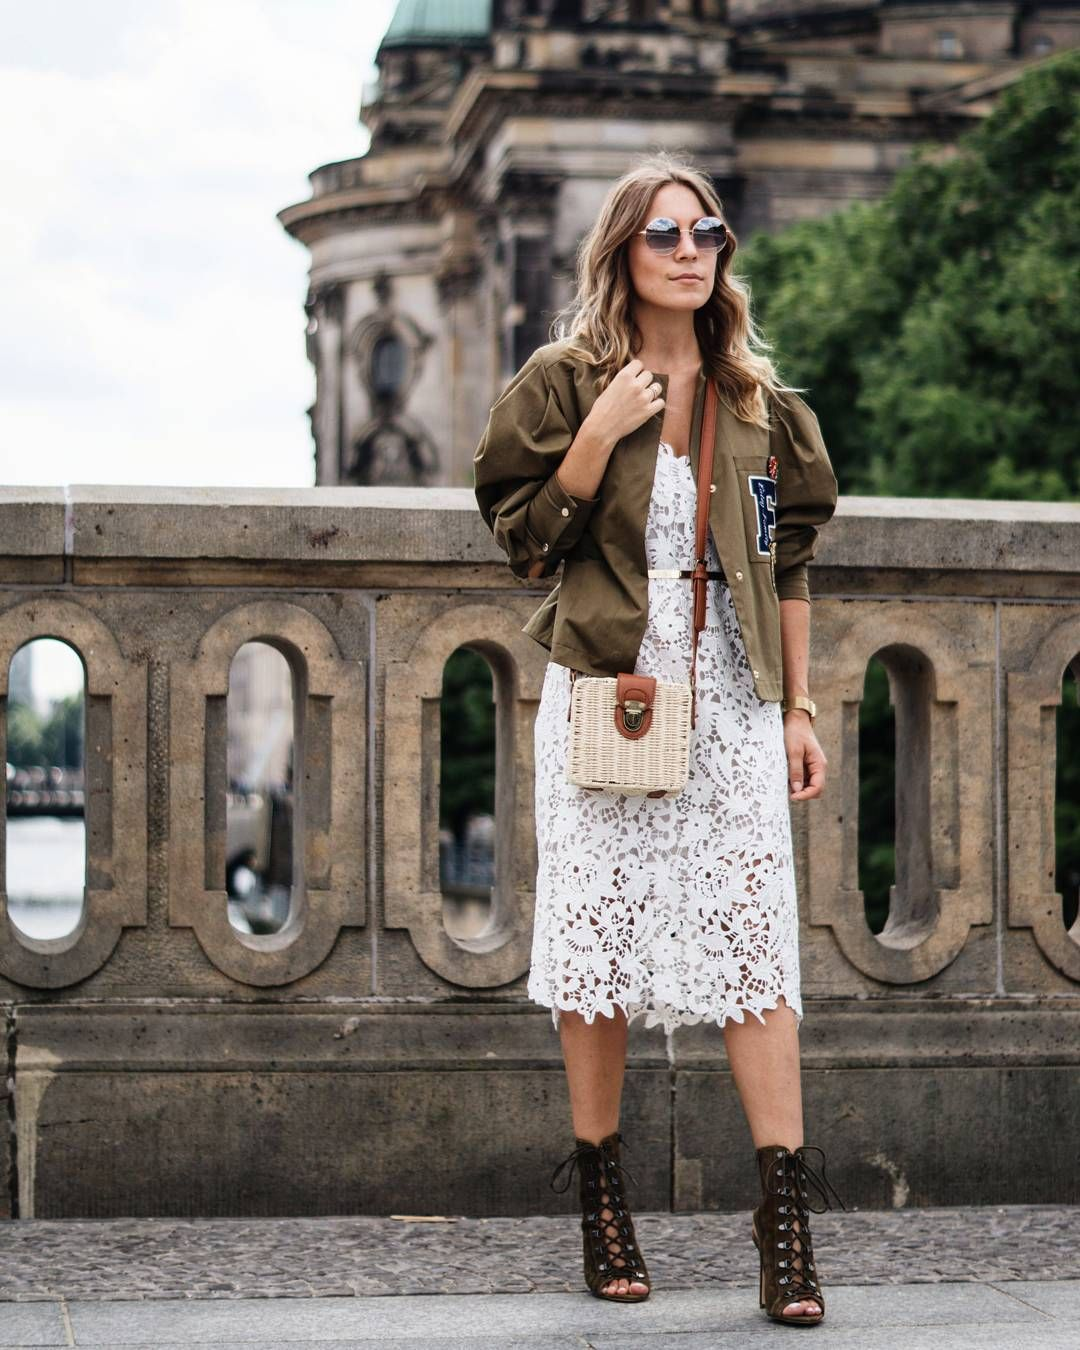 Pink lace dress with jacket  Sarah Schaefer  SARIETYCOM sariiety auf Instagram ueUp on the